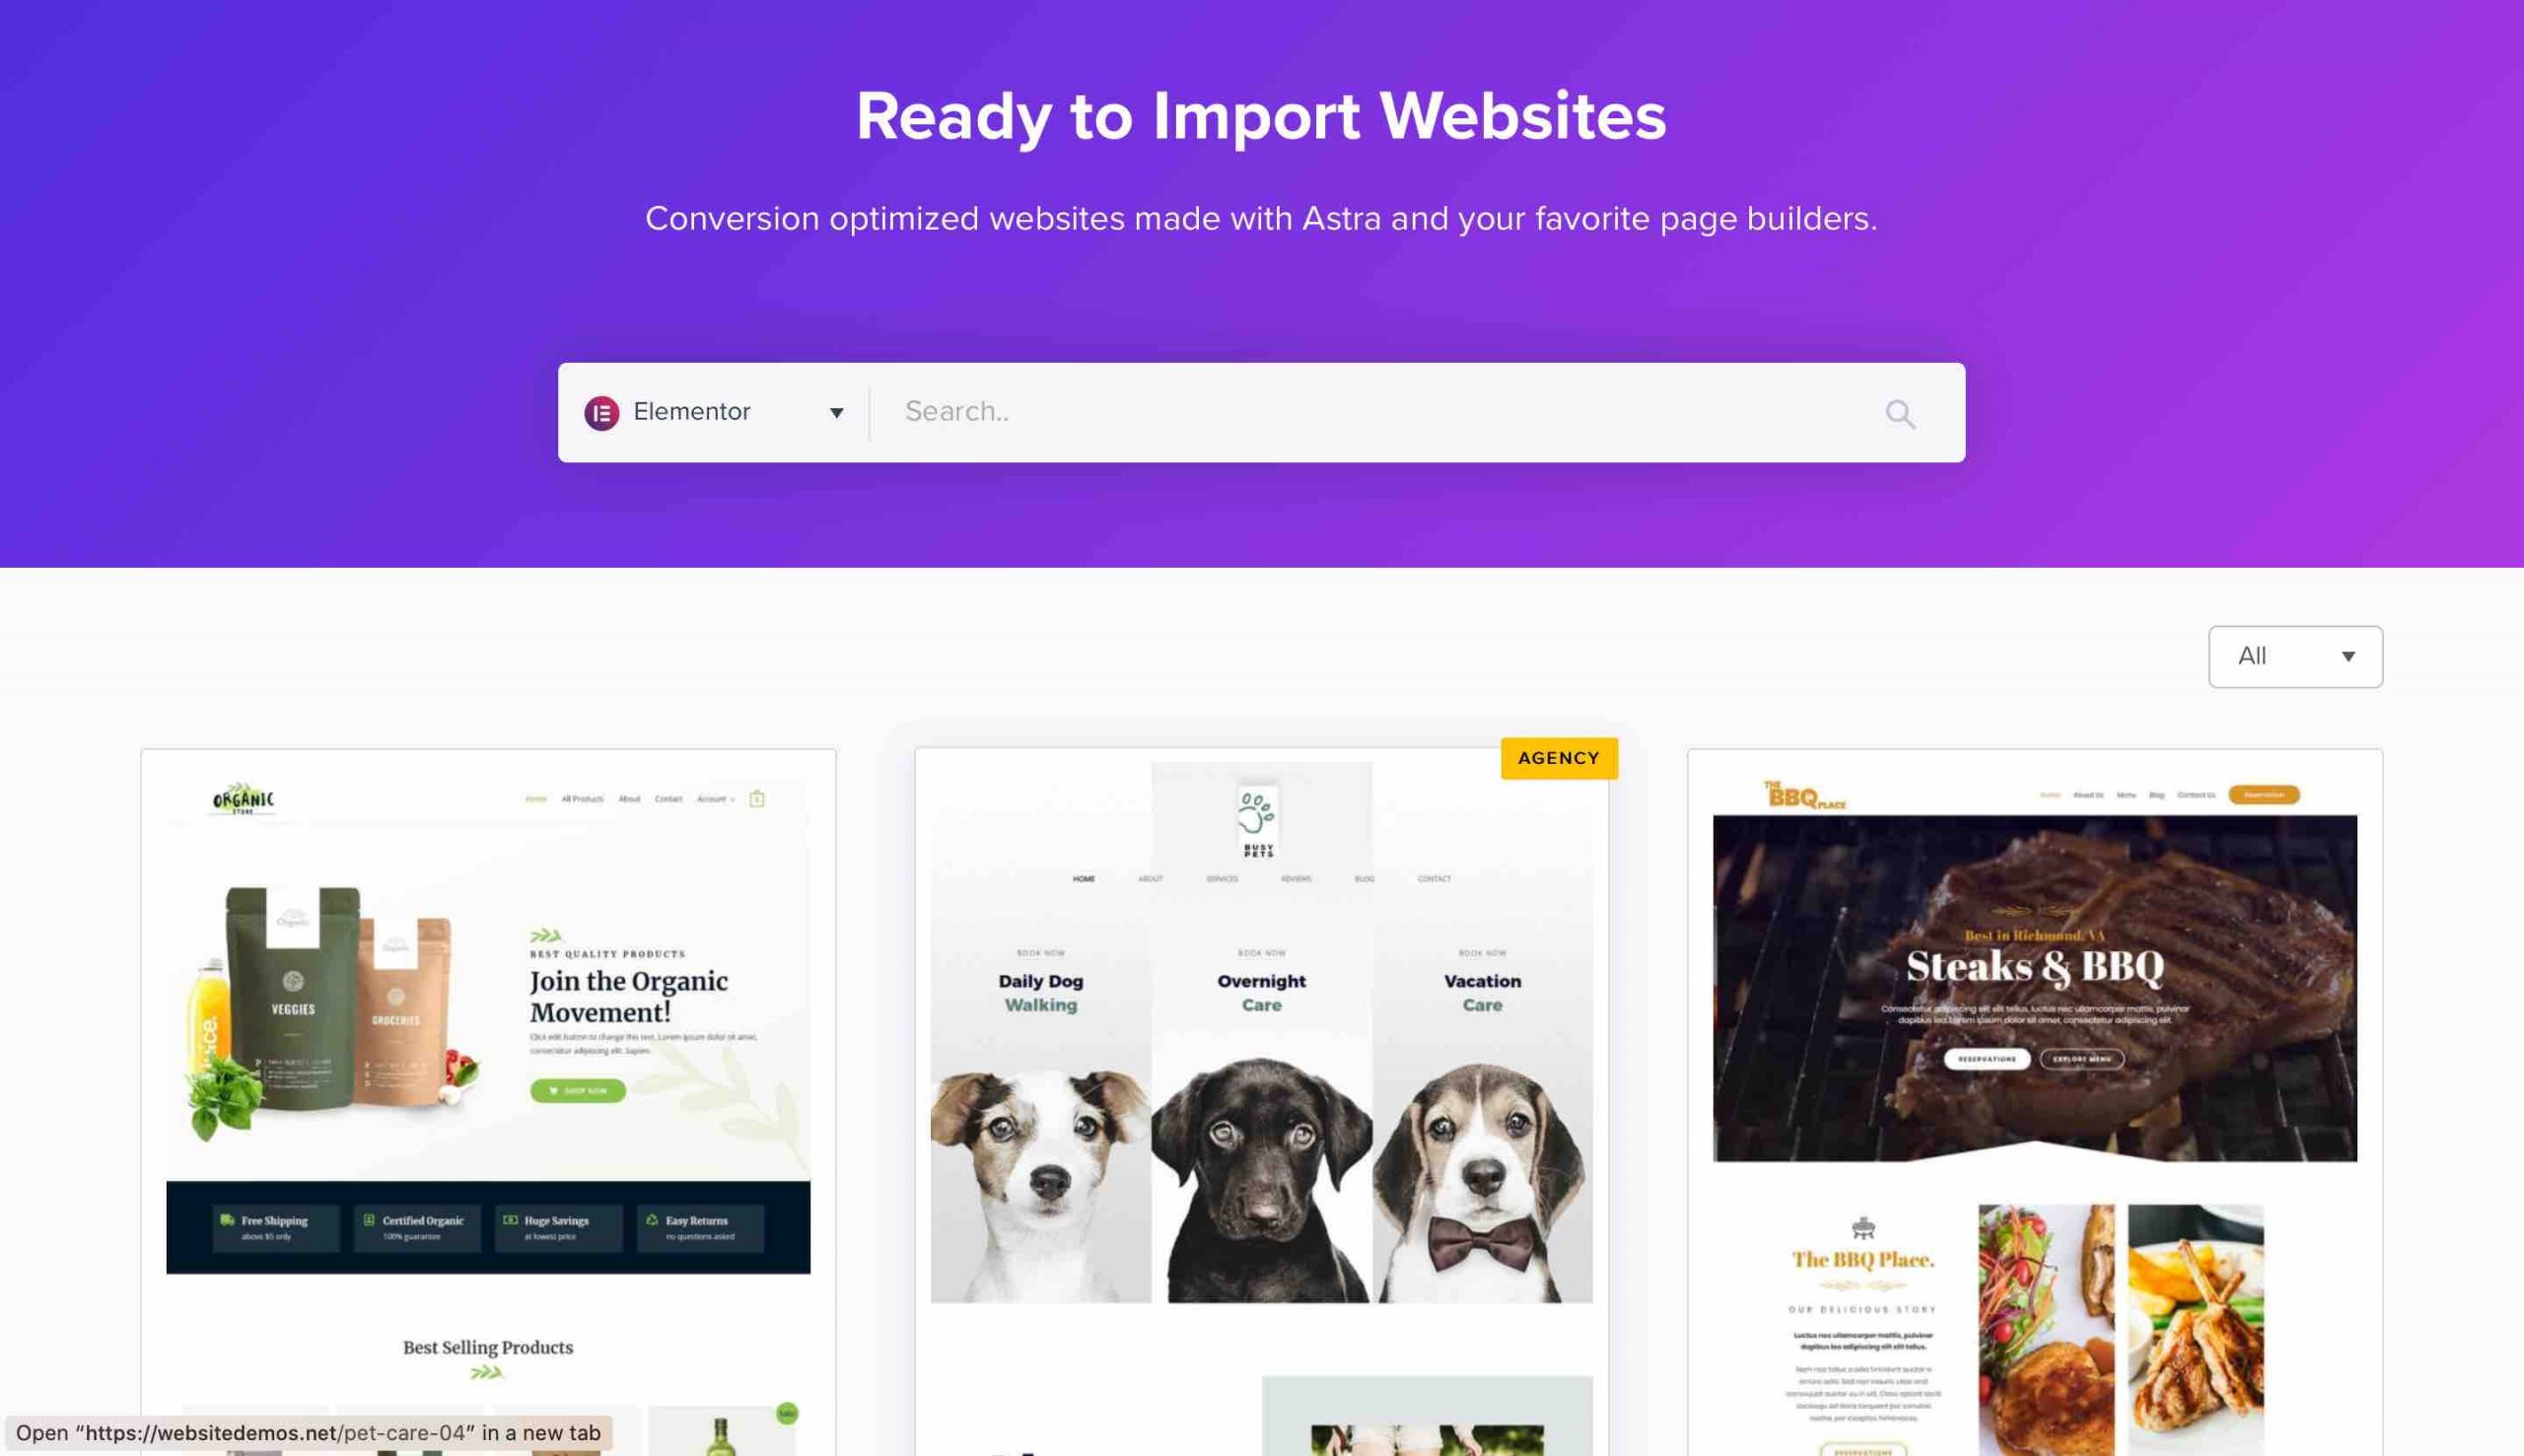 Pre built websites library of Astra